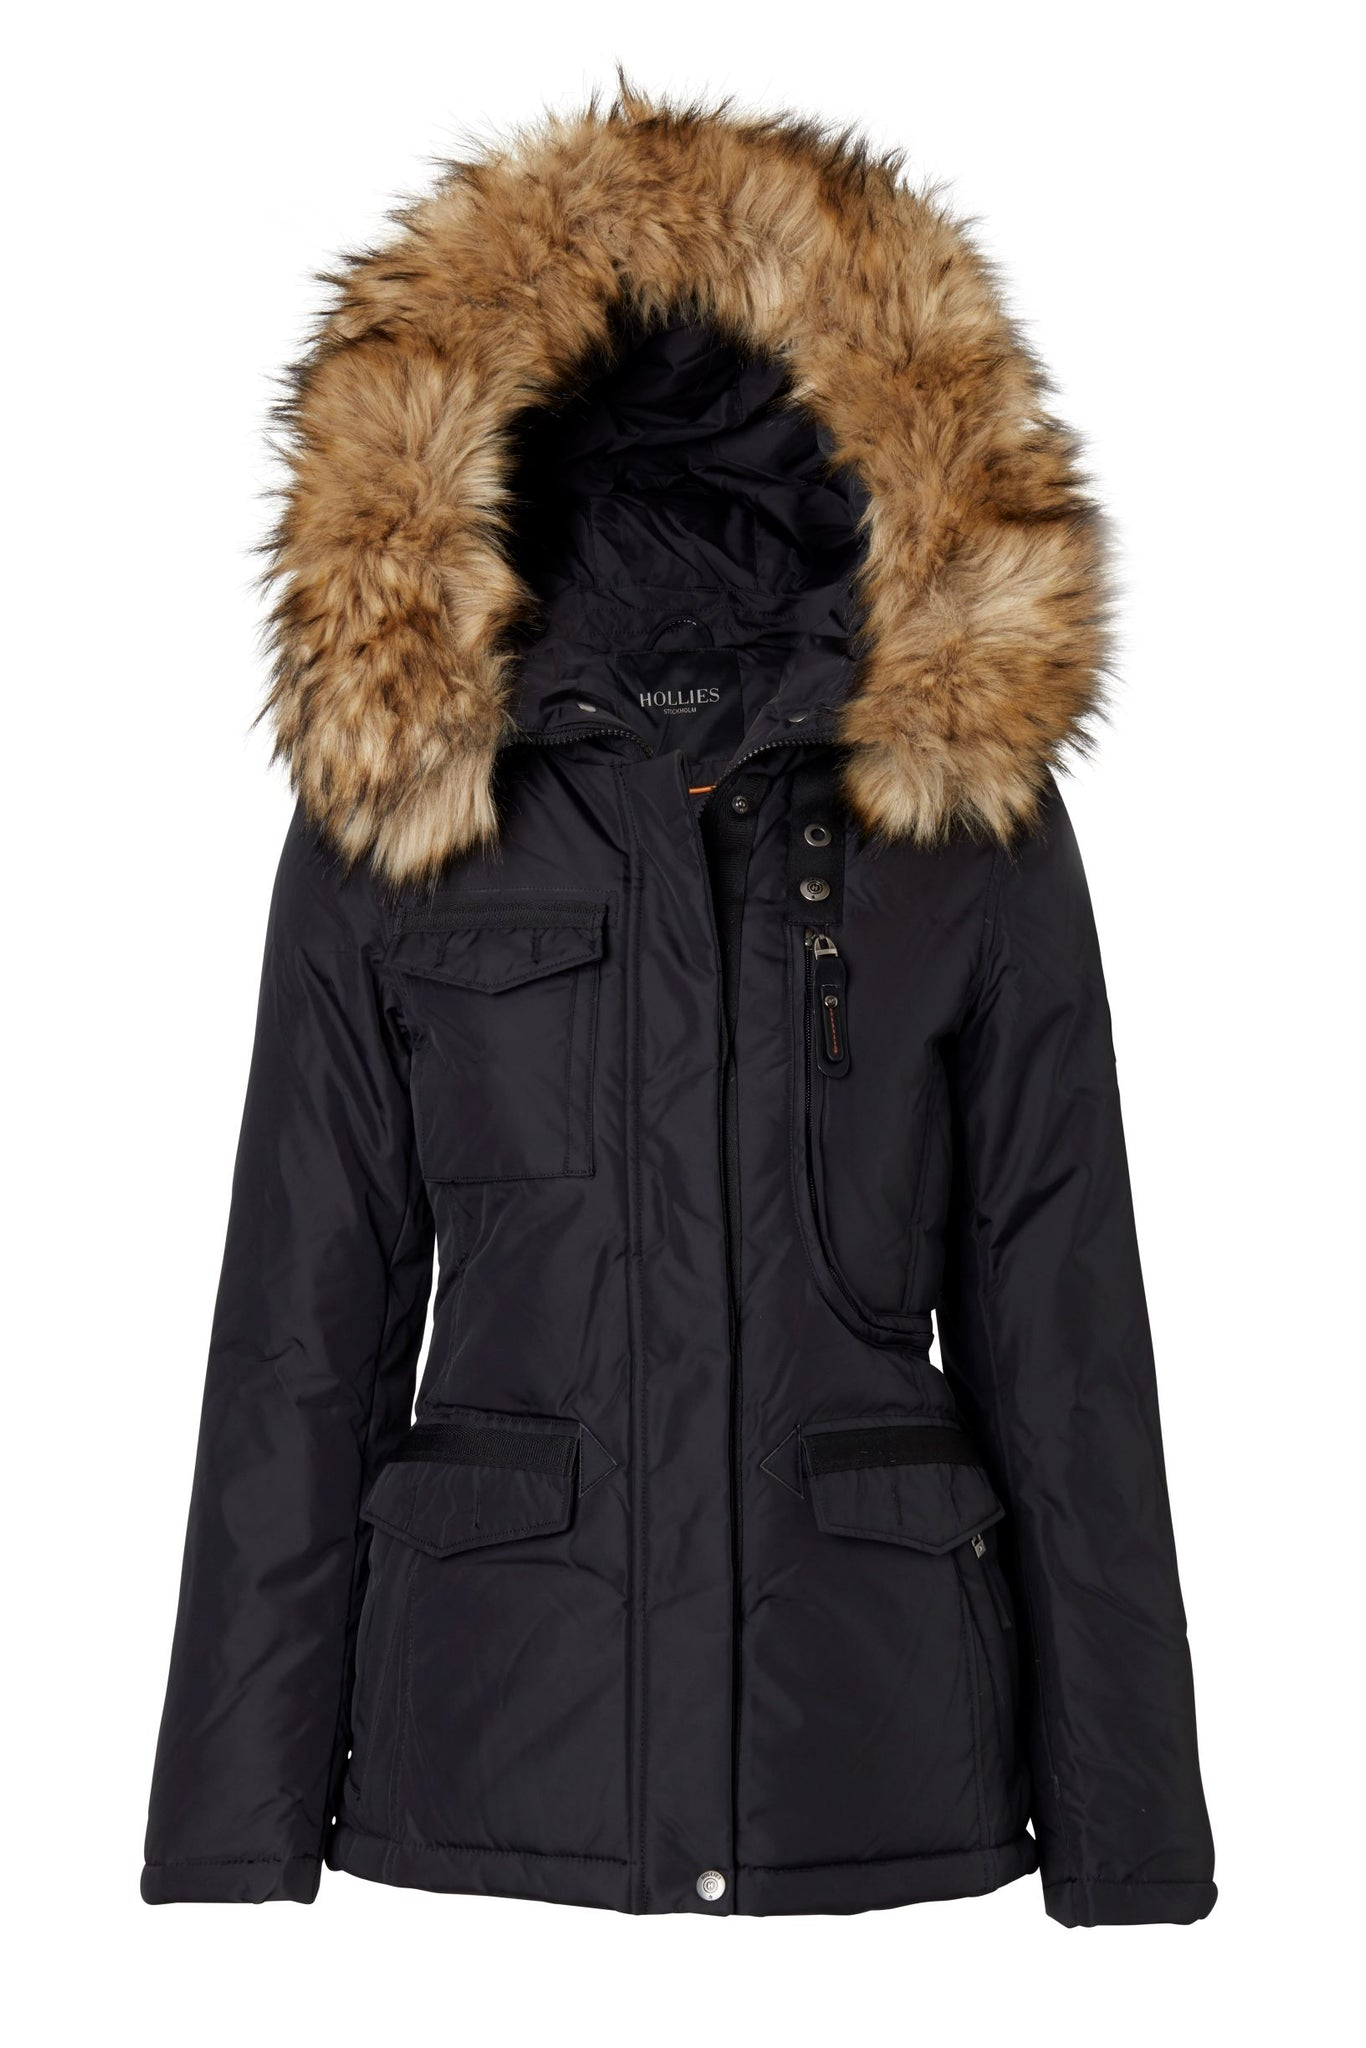 LIVIGNO BLACK/NATURE FAUX FUR